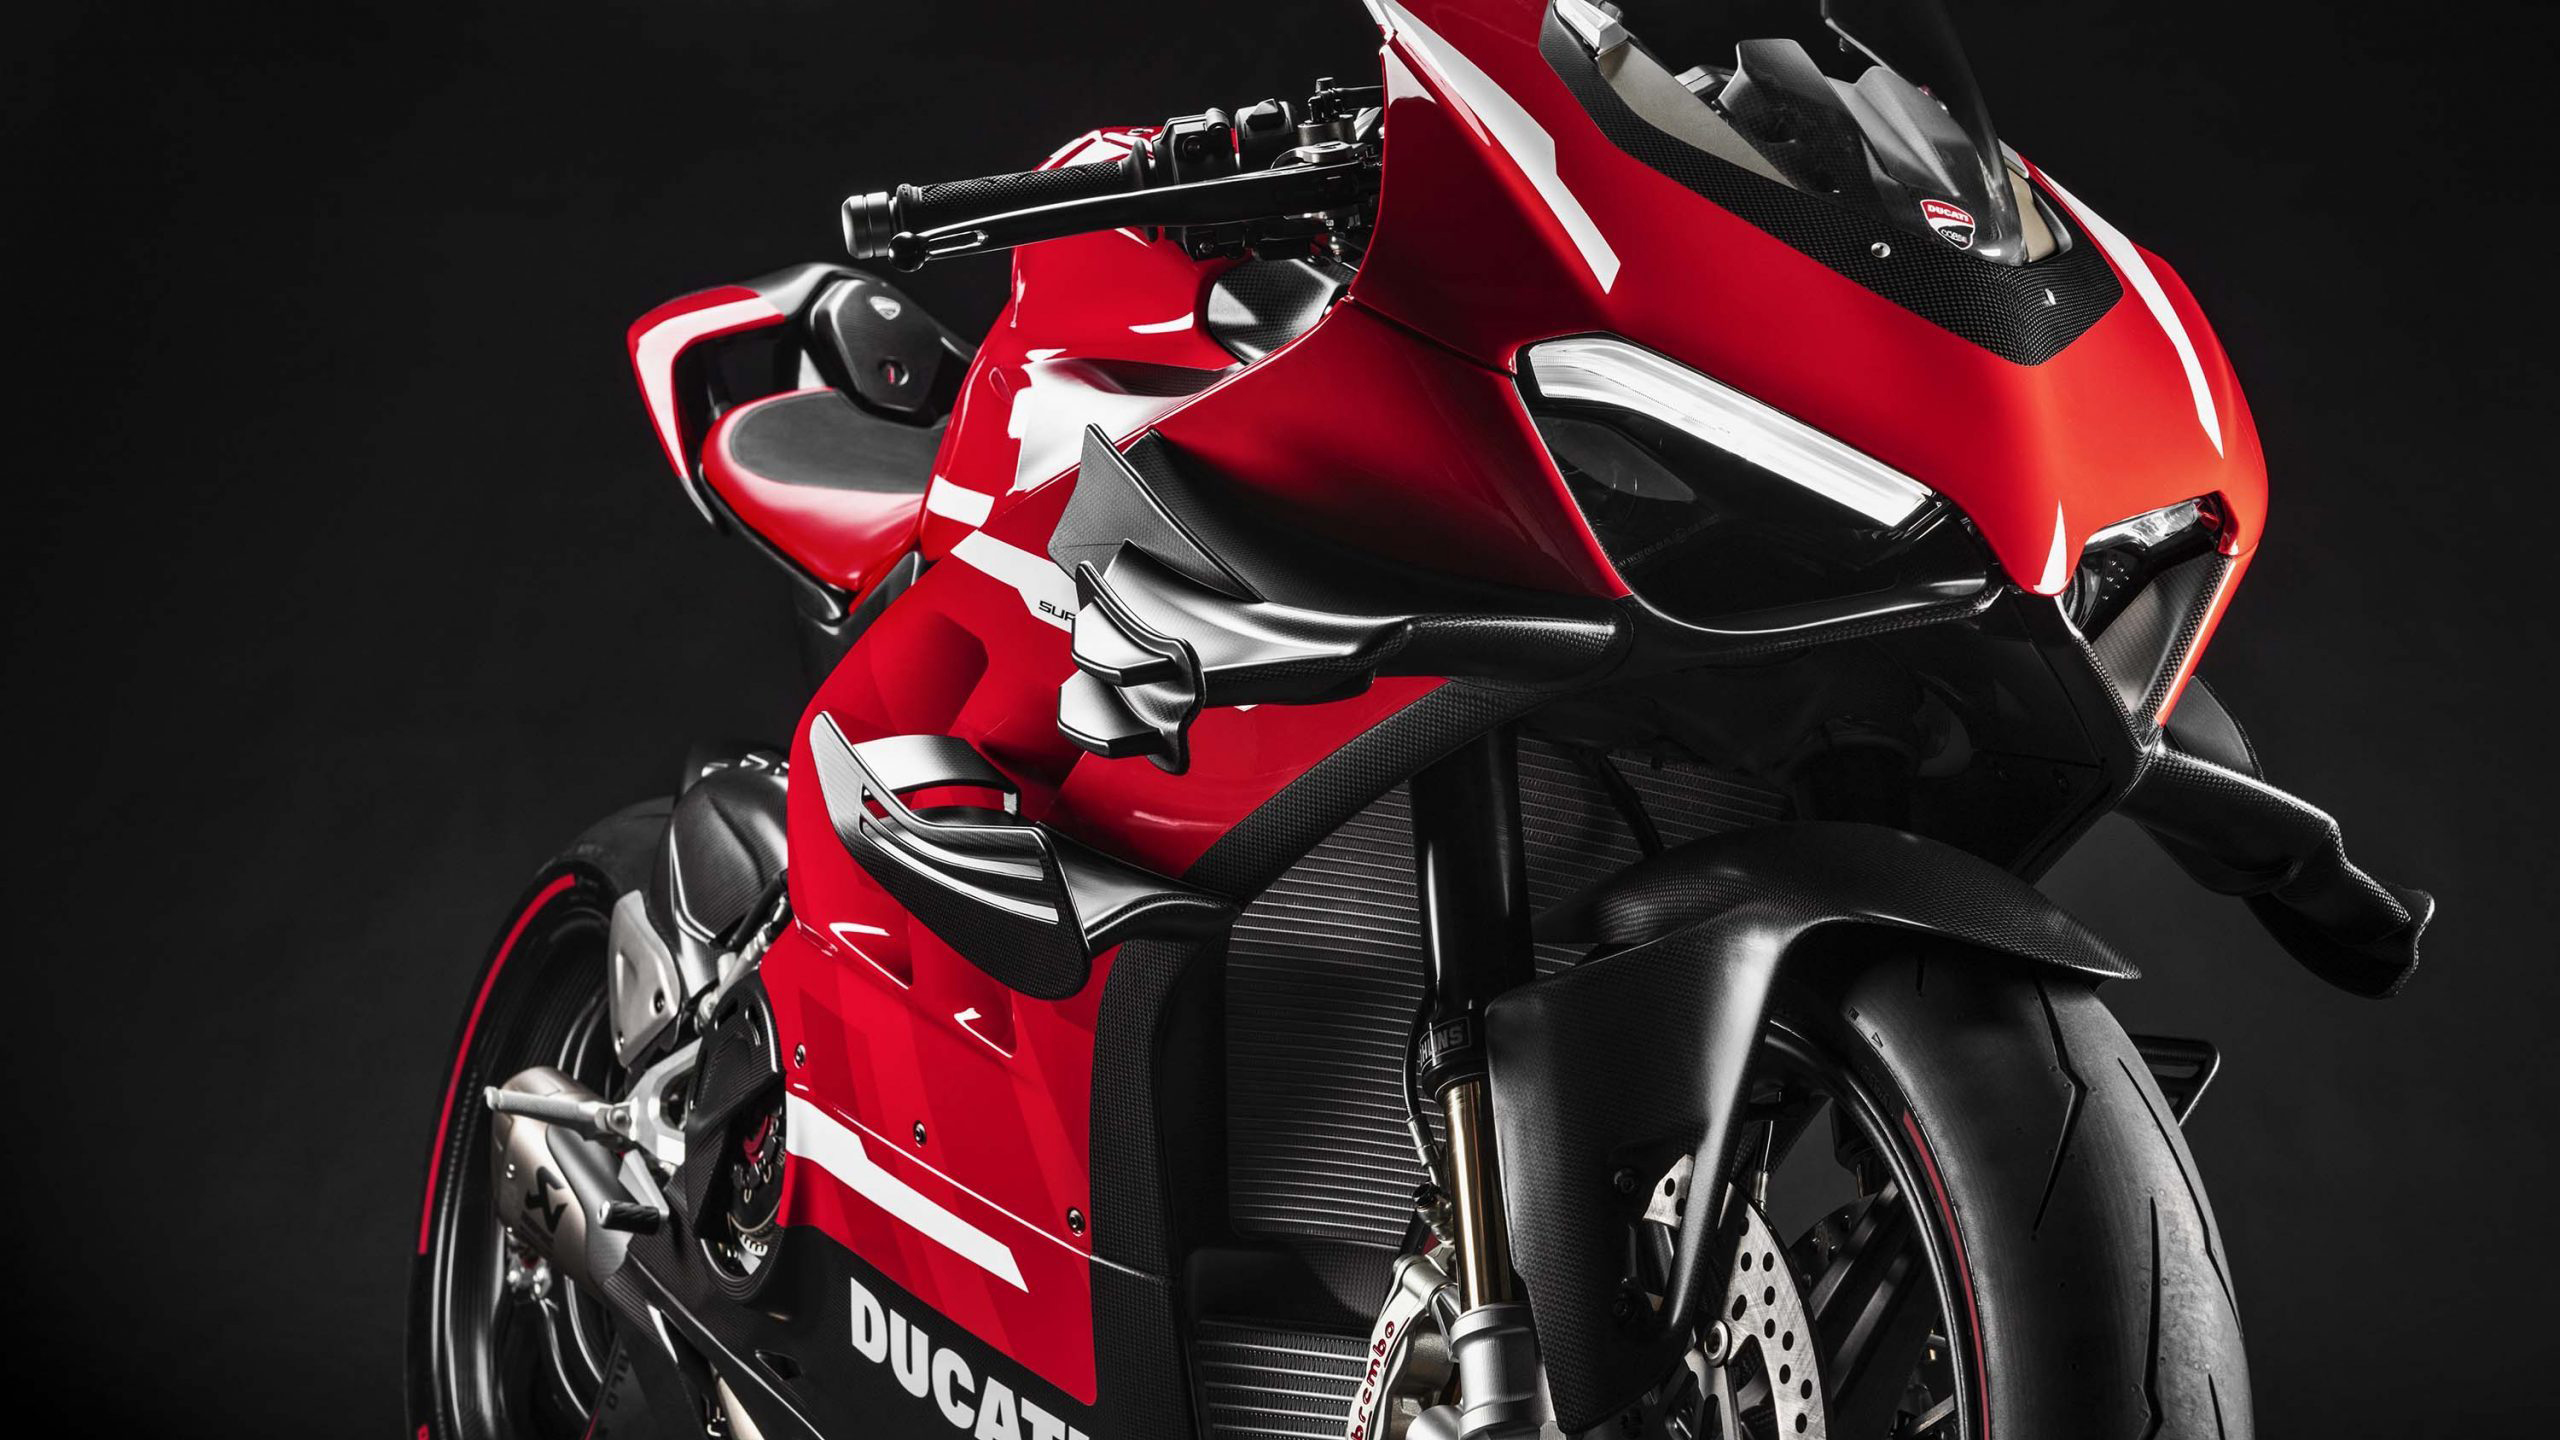 2020 ducati superleggera v4 4